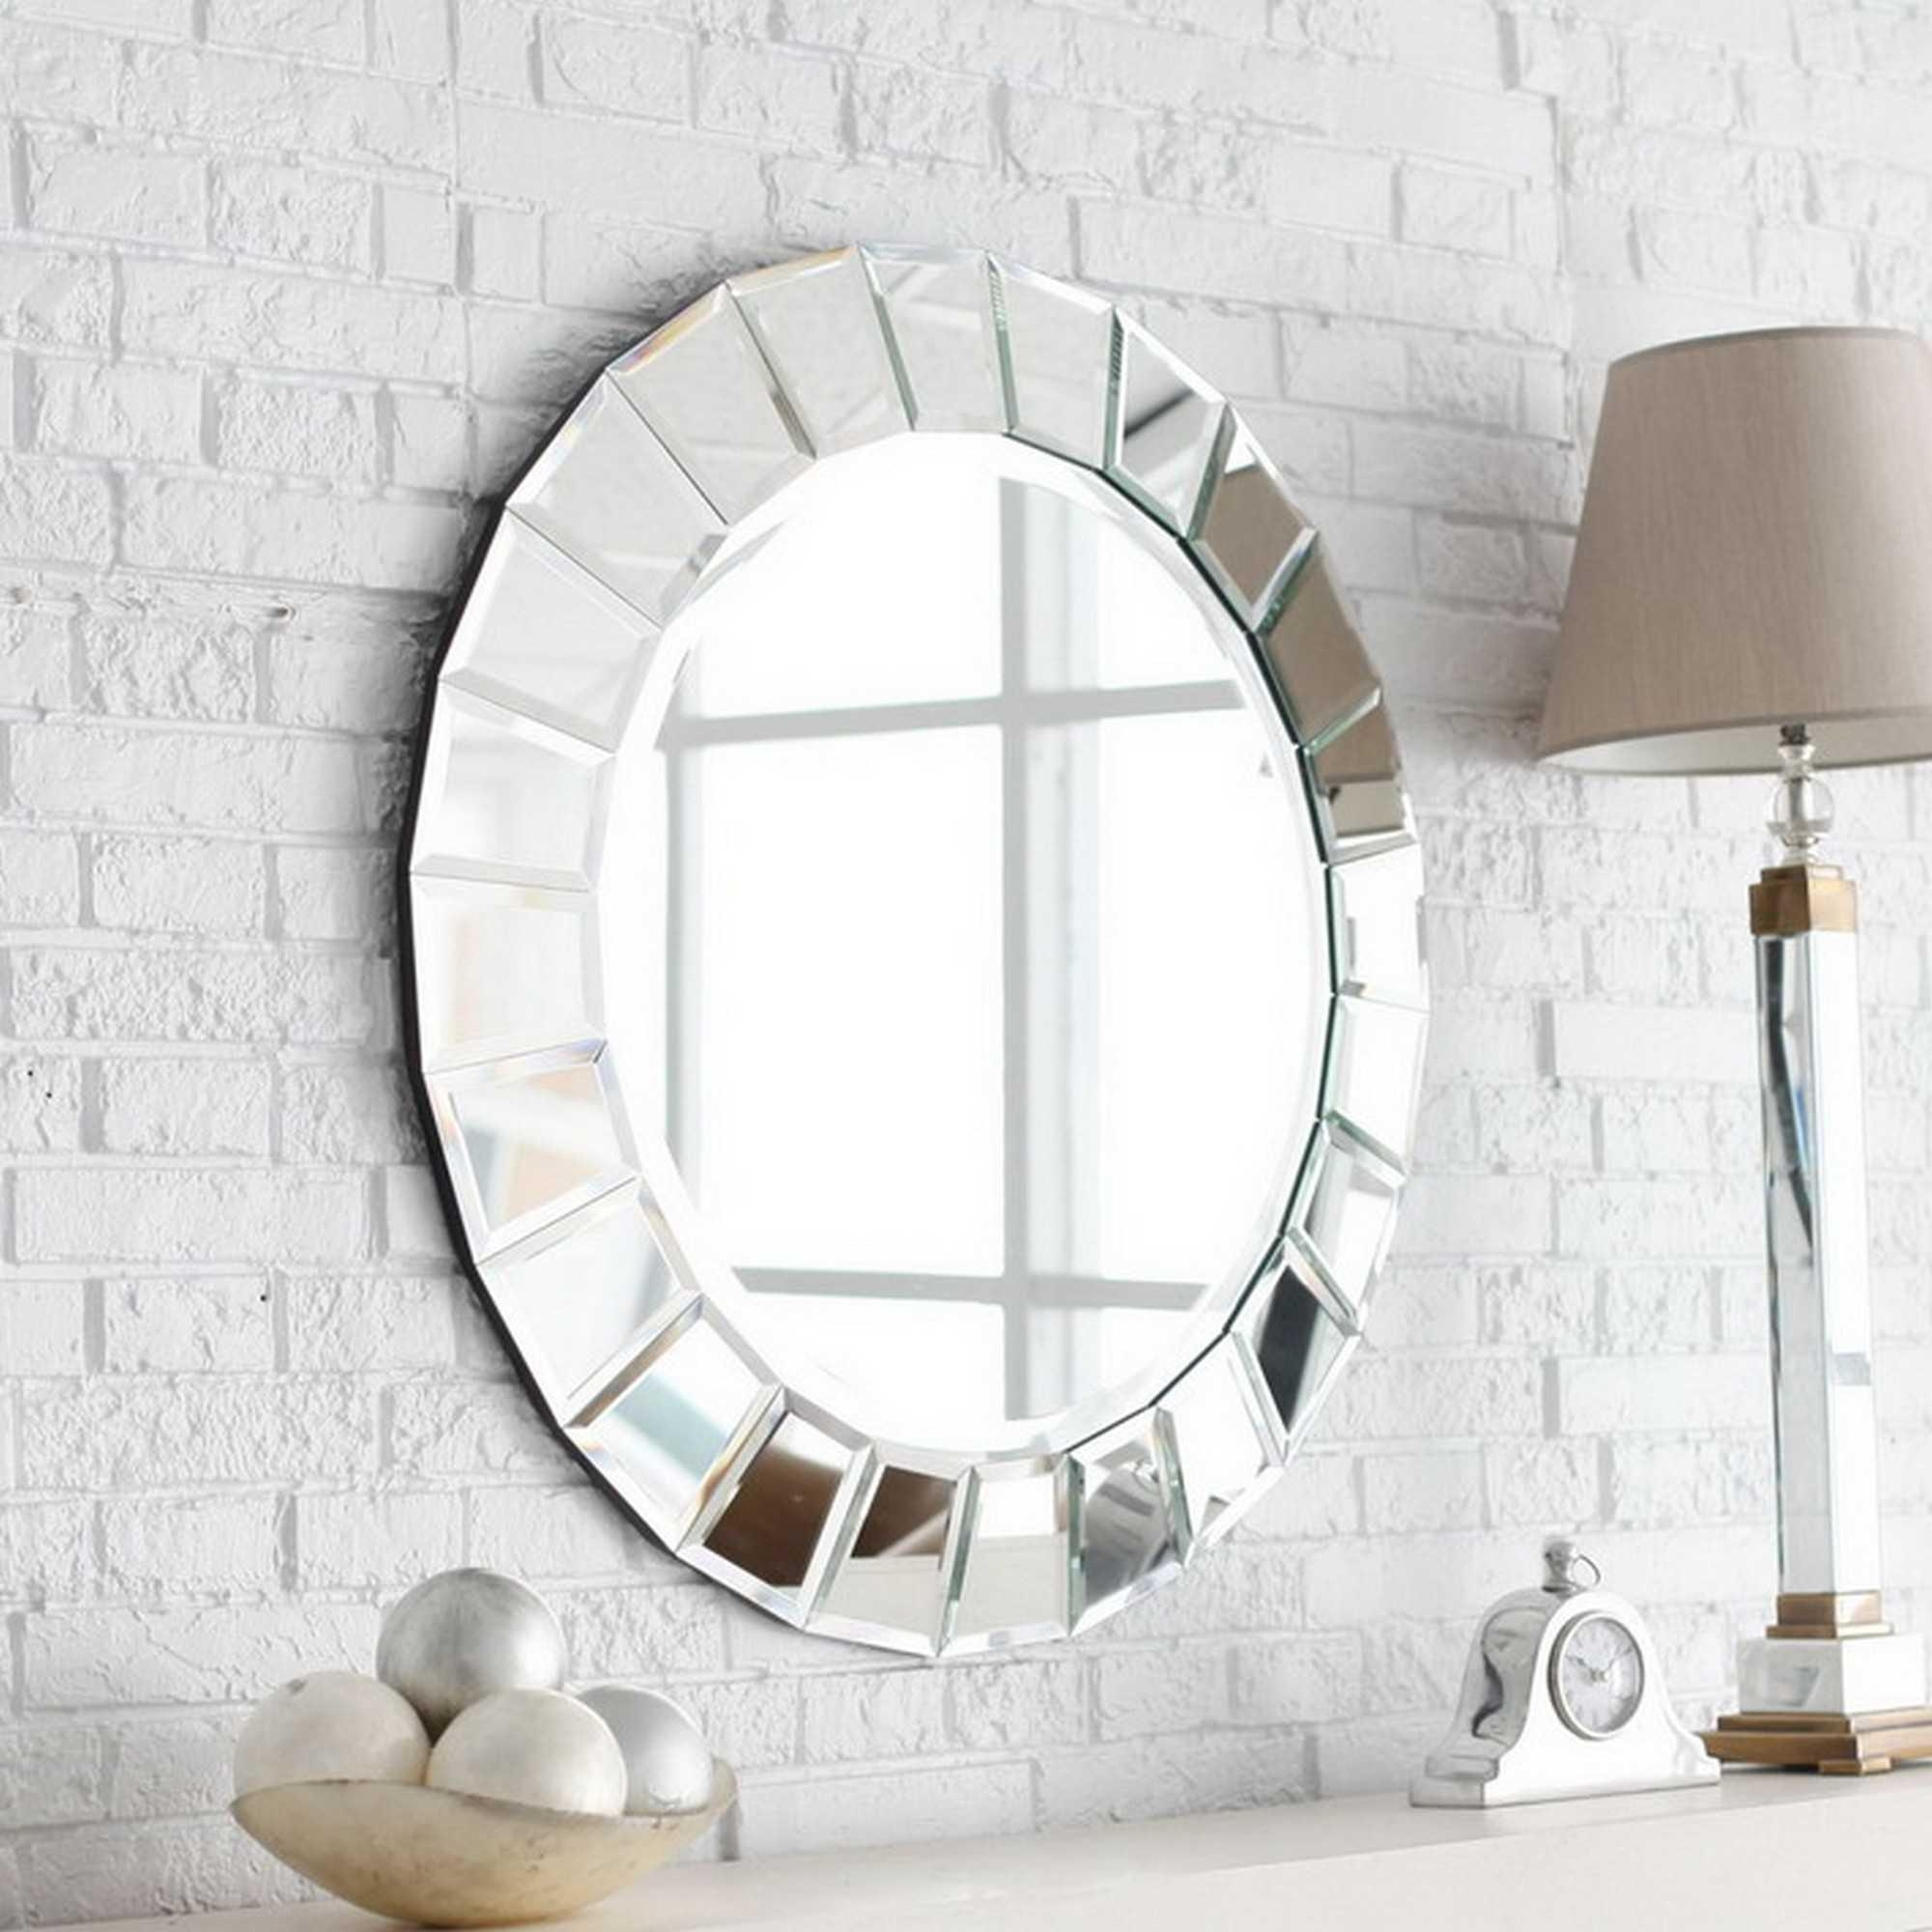 20+ Ways To Round Bathroom Mirrors In Round Mirrors For Bathroom (Image 1 of 20)